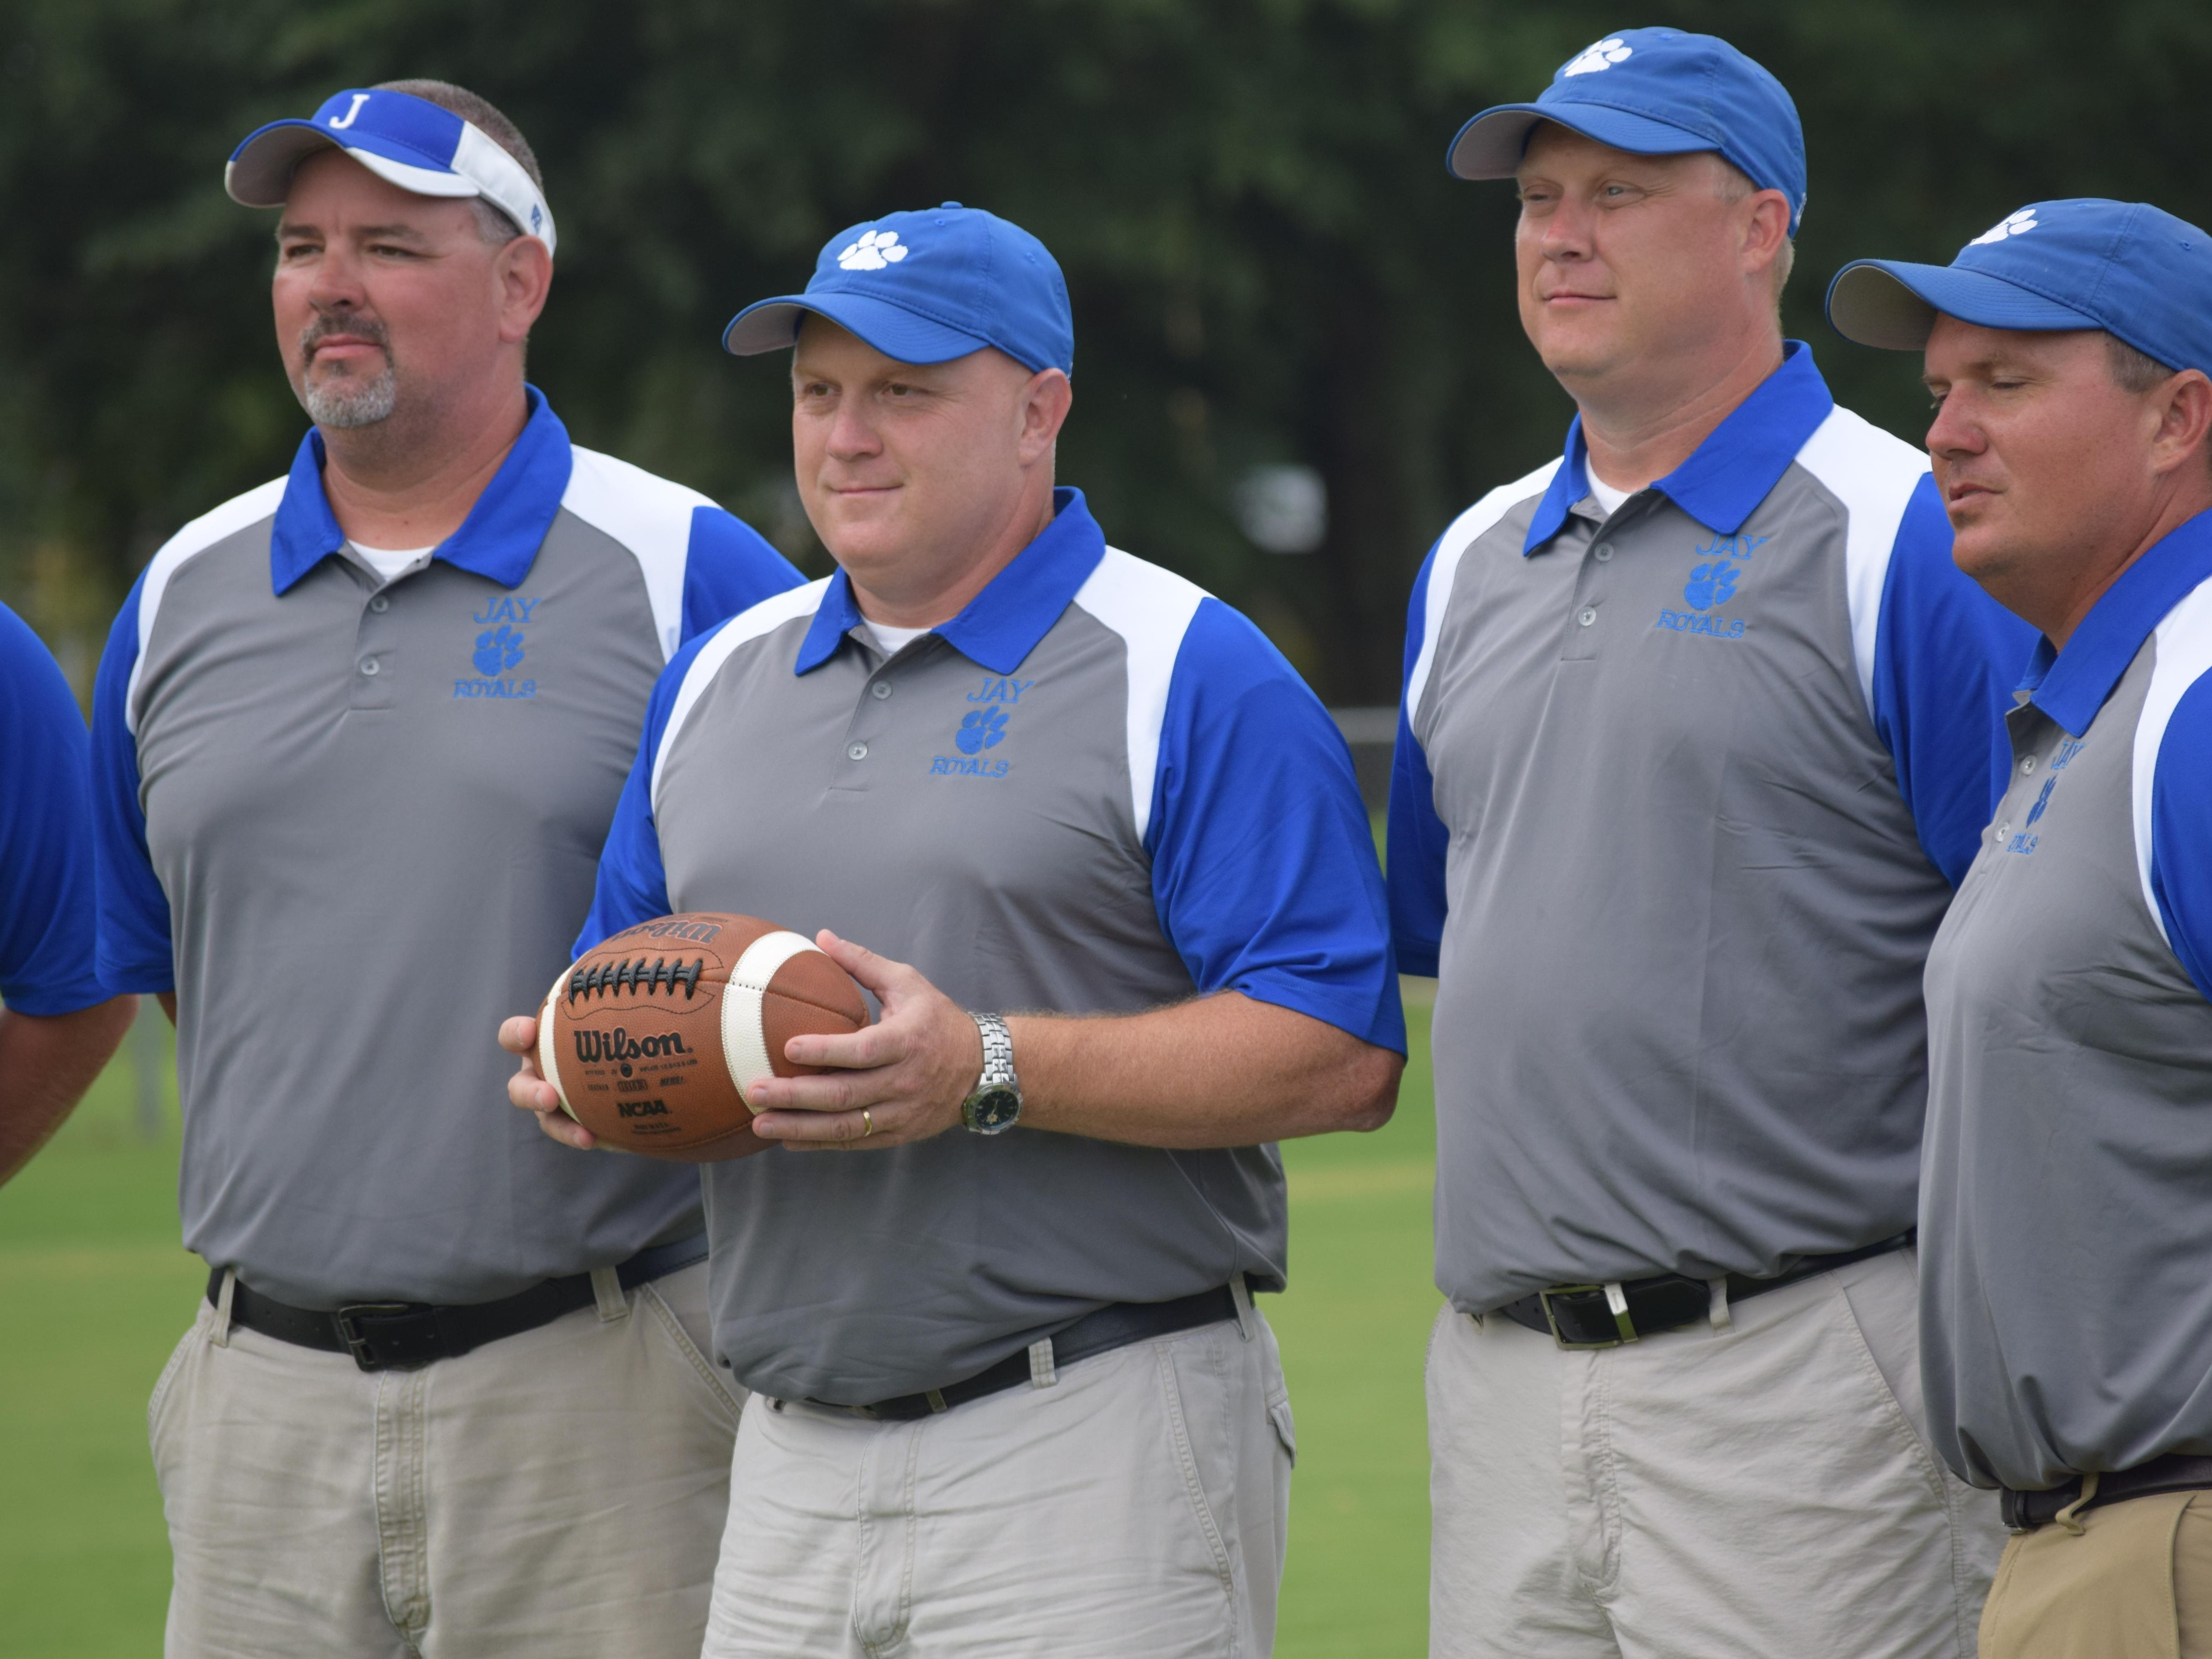 New Jay High football coach Melvin Kersey (holding football) with members of his coaching staff, including former teammates when they played at Jay in the 1990's.